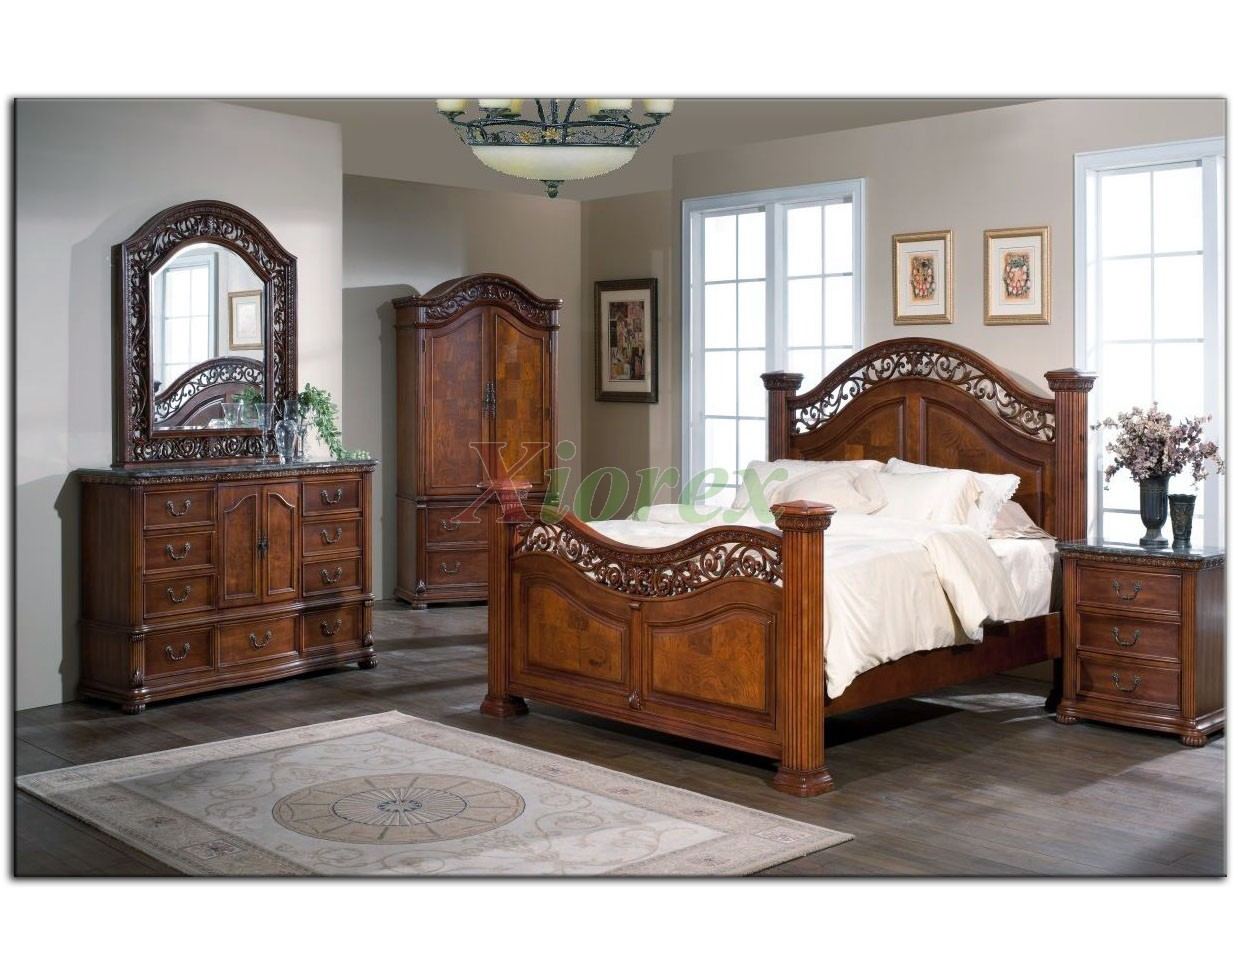 Poster bedroom furniture set 114 xiorex for Bedroom furniture set